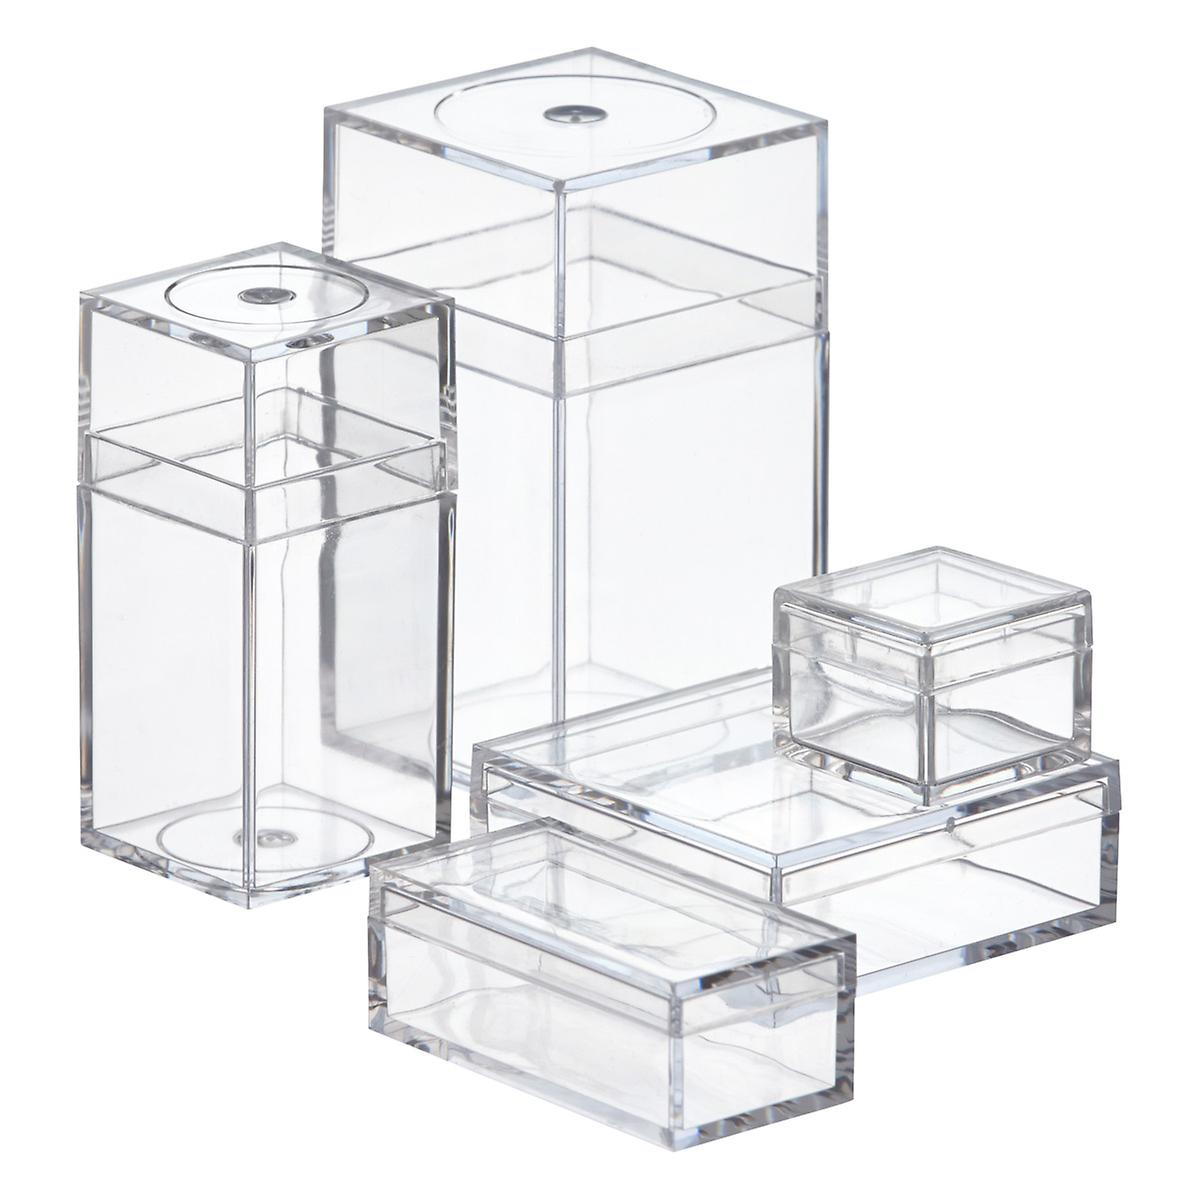 Small plastic boxes small clear amac boxes the for Clear bathroom containers